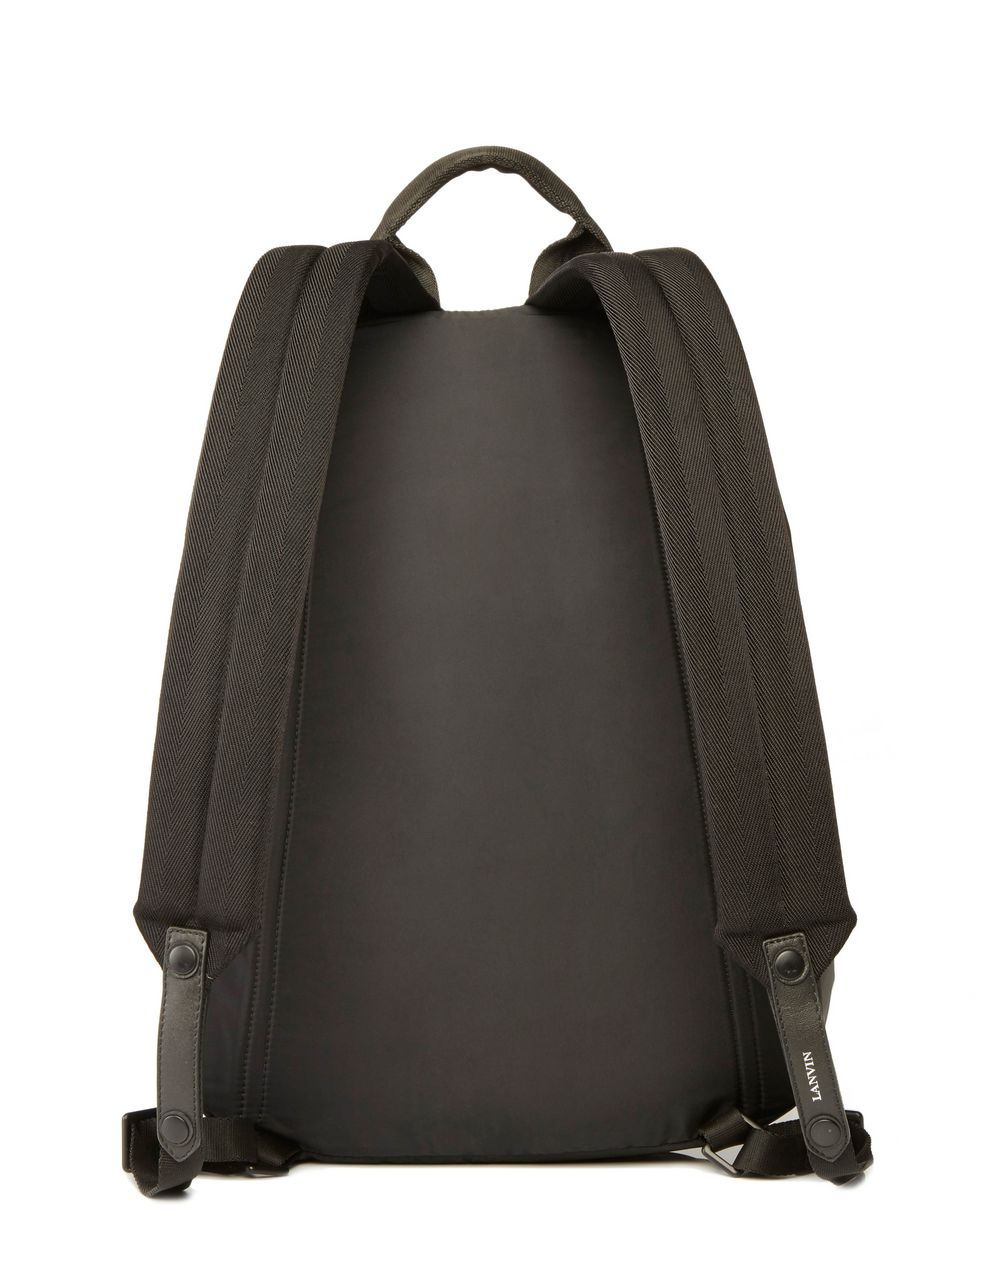 NYLON ZIPPERED BACKPACK - Lanvin